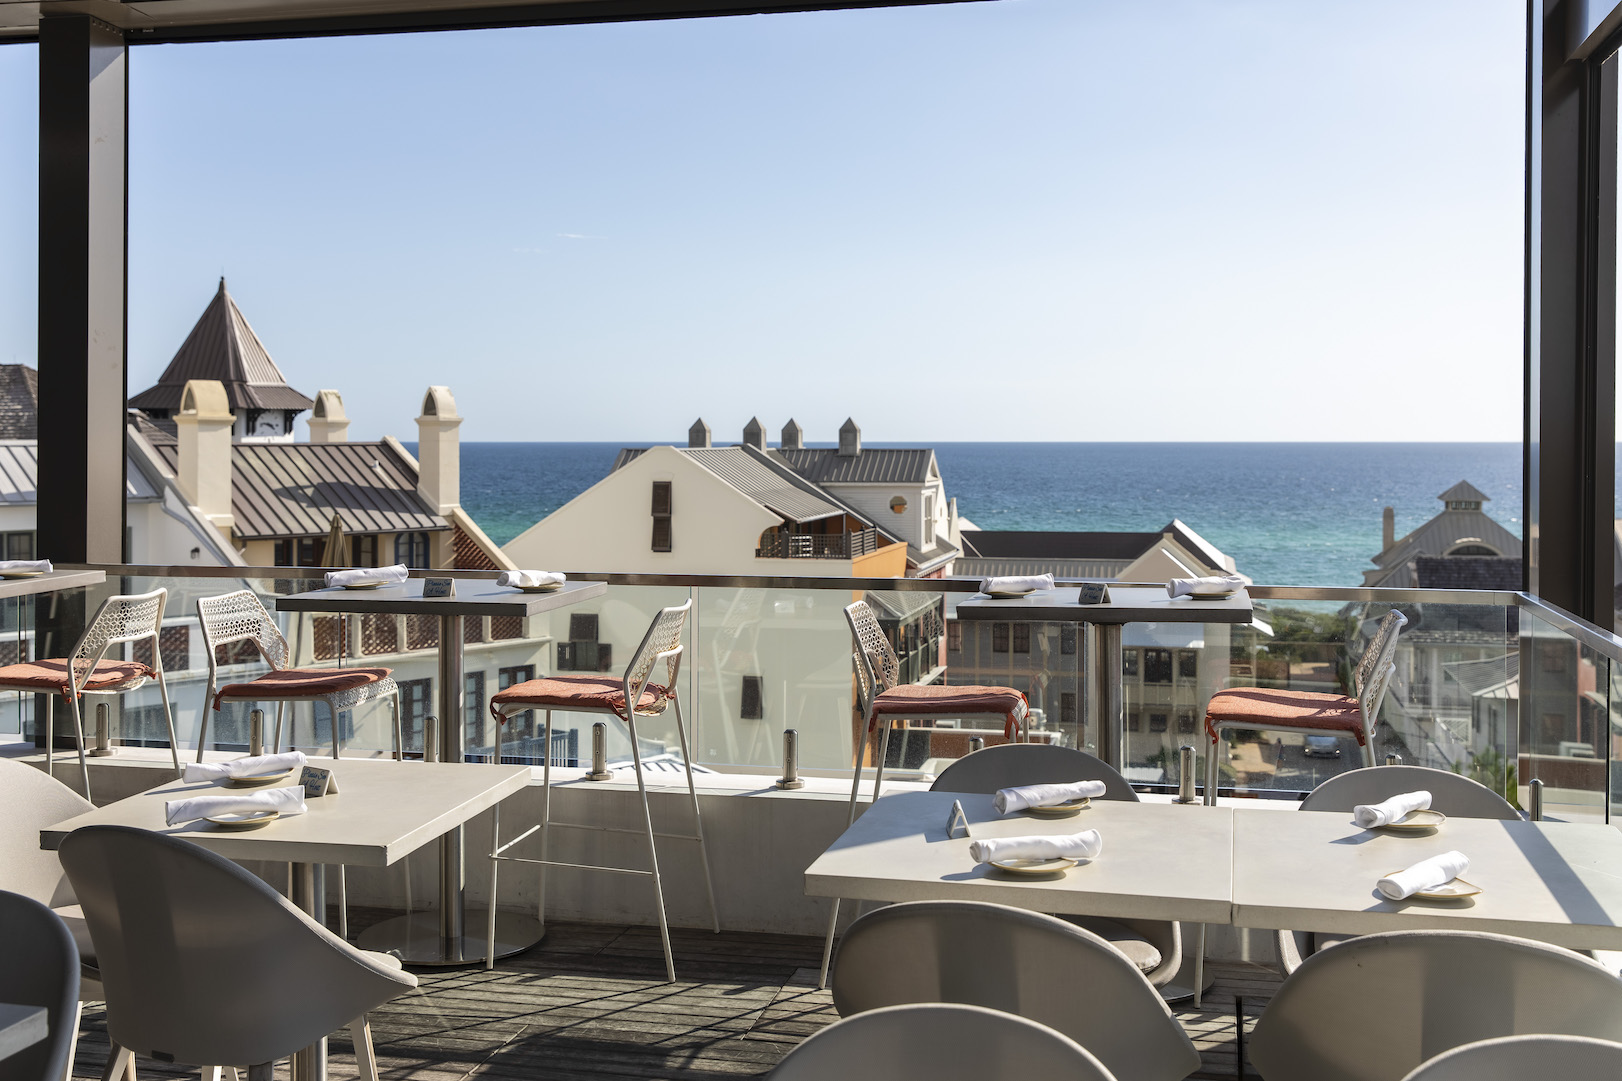 Pescado Seafood Grill and Rooftop Bar in Rosemary Beach to Reopen May 7